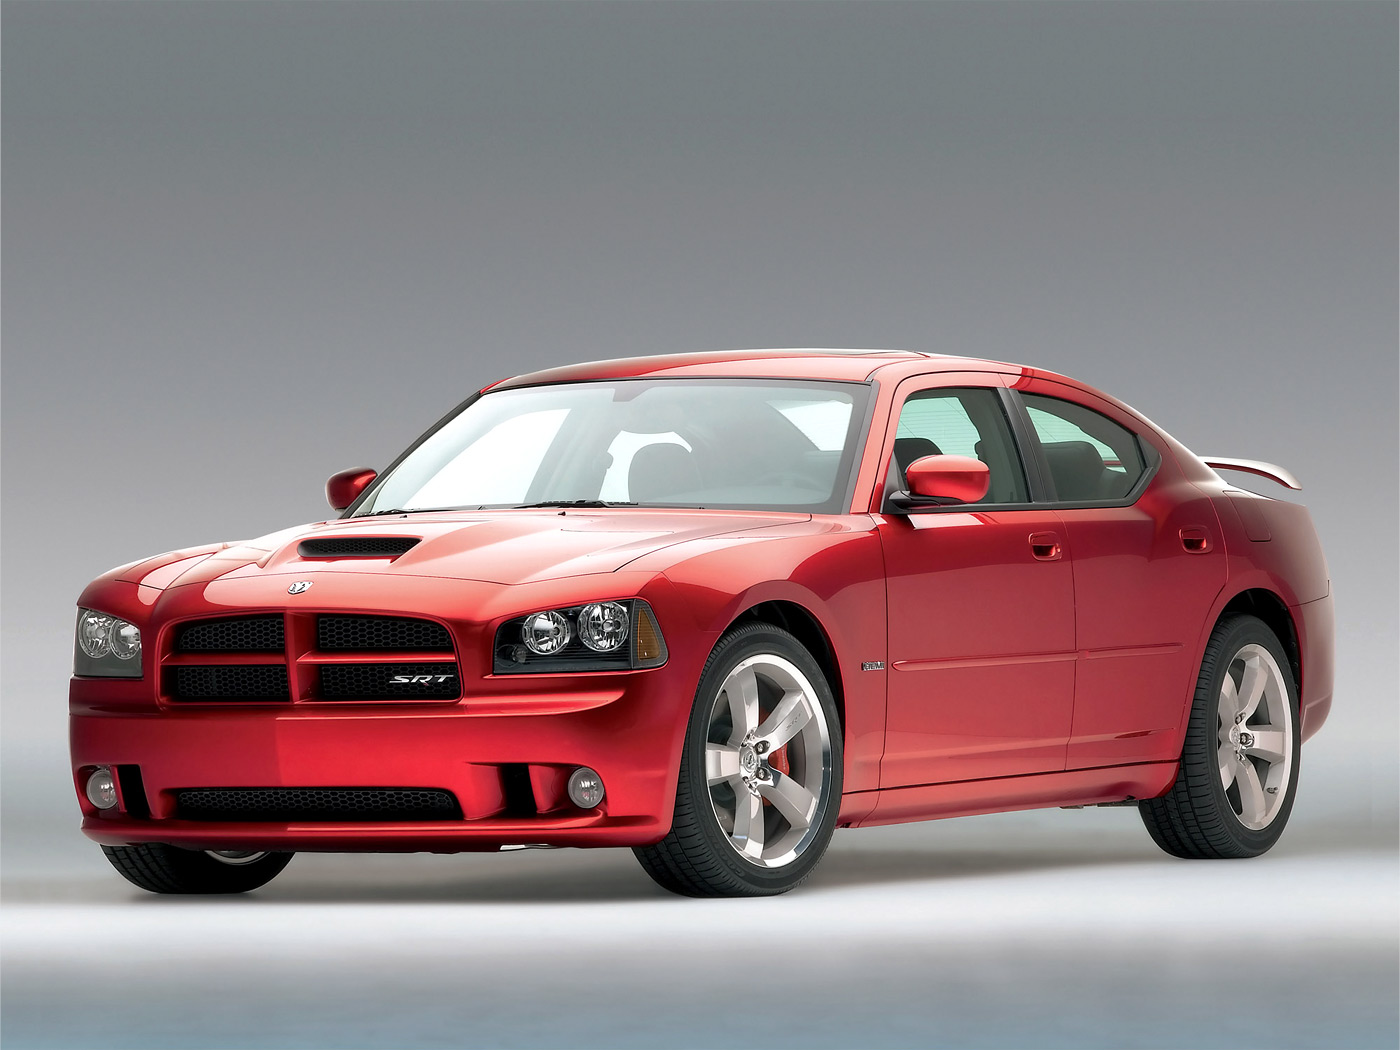 wallpapers Dodge Charger SRT 8 2006 1400x1050